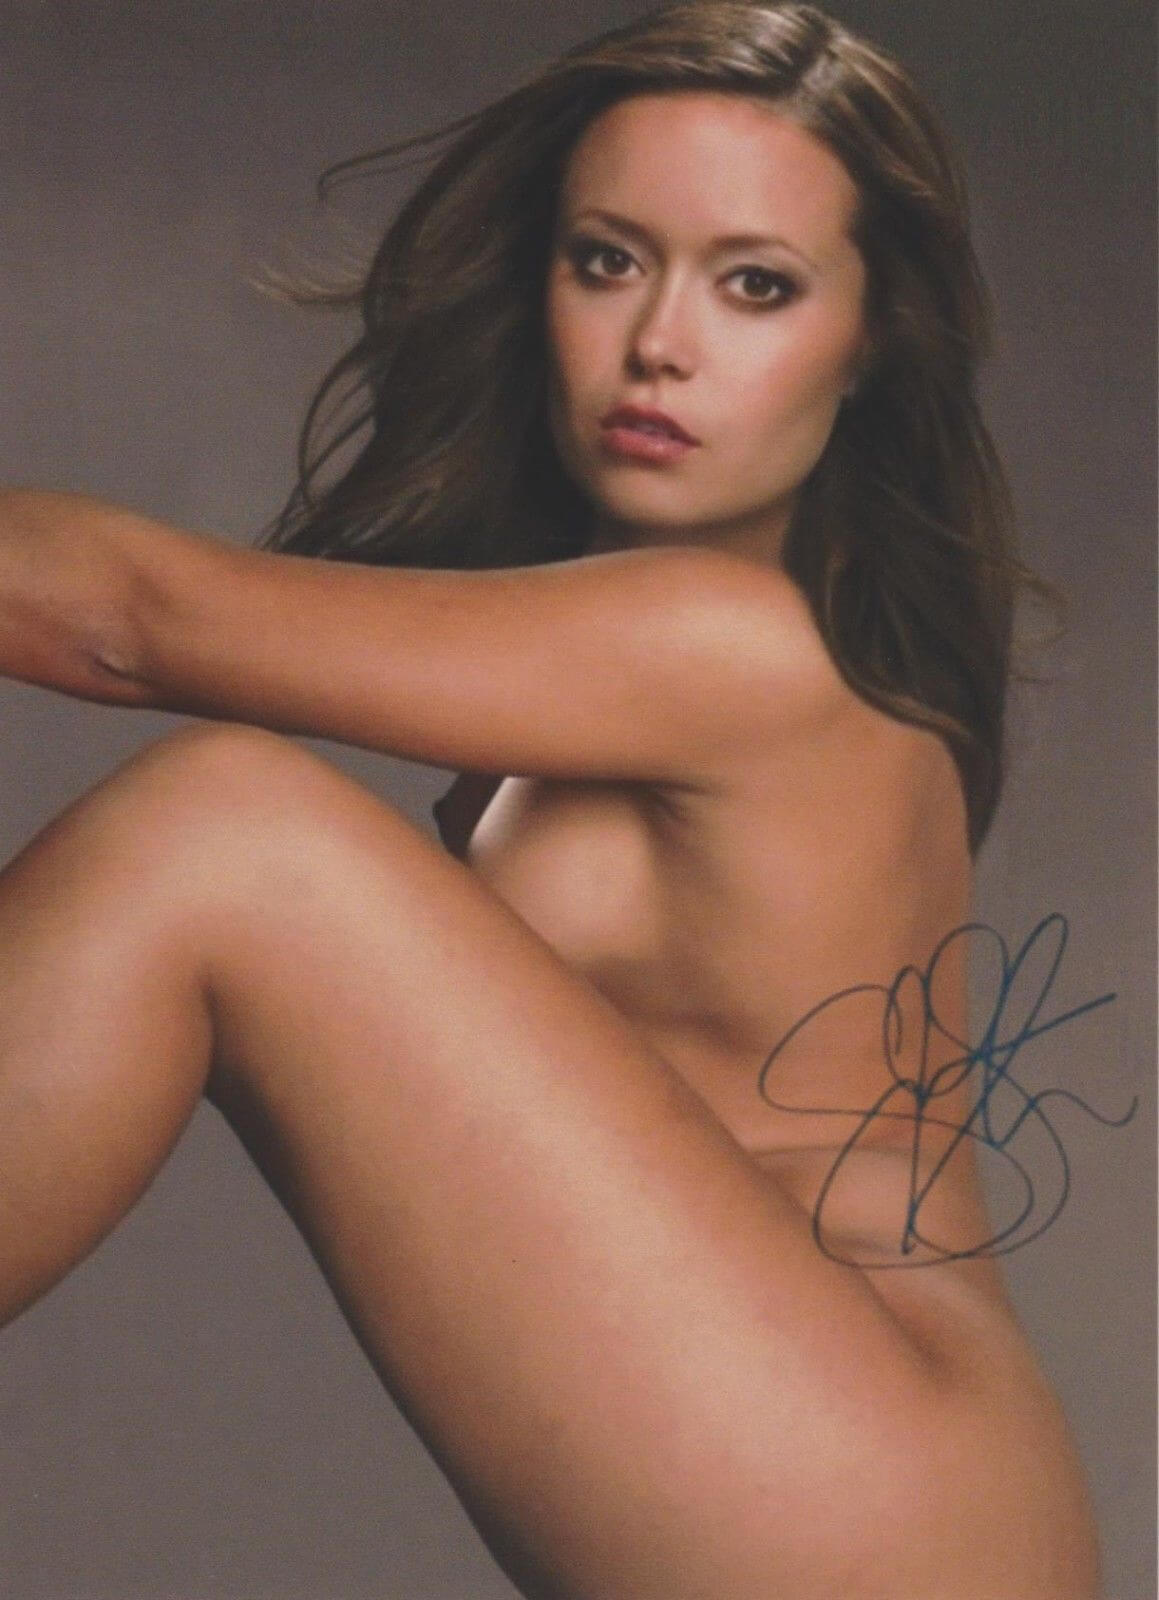 Hottest Summer Glau Boobs Pictures Proves She Is A Shining